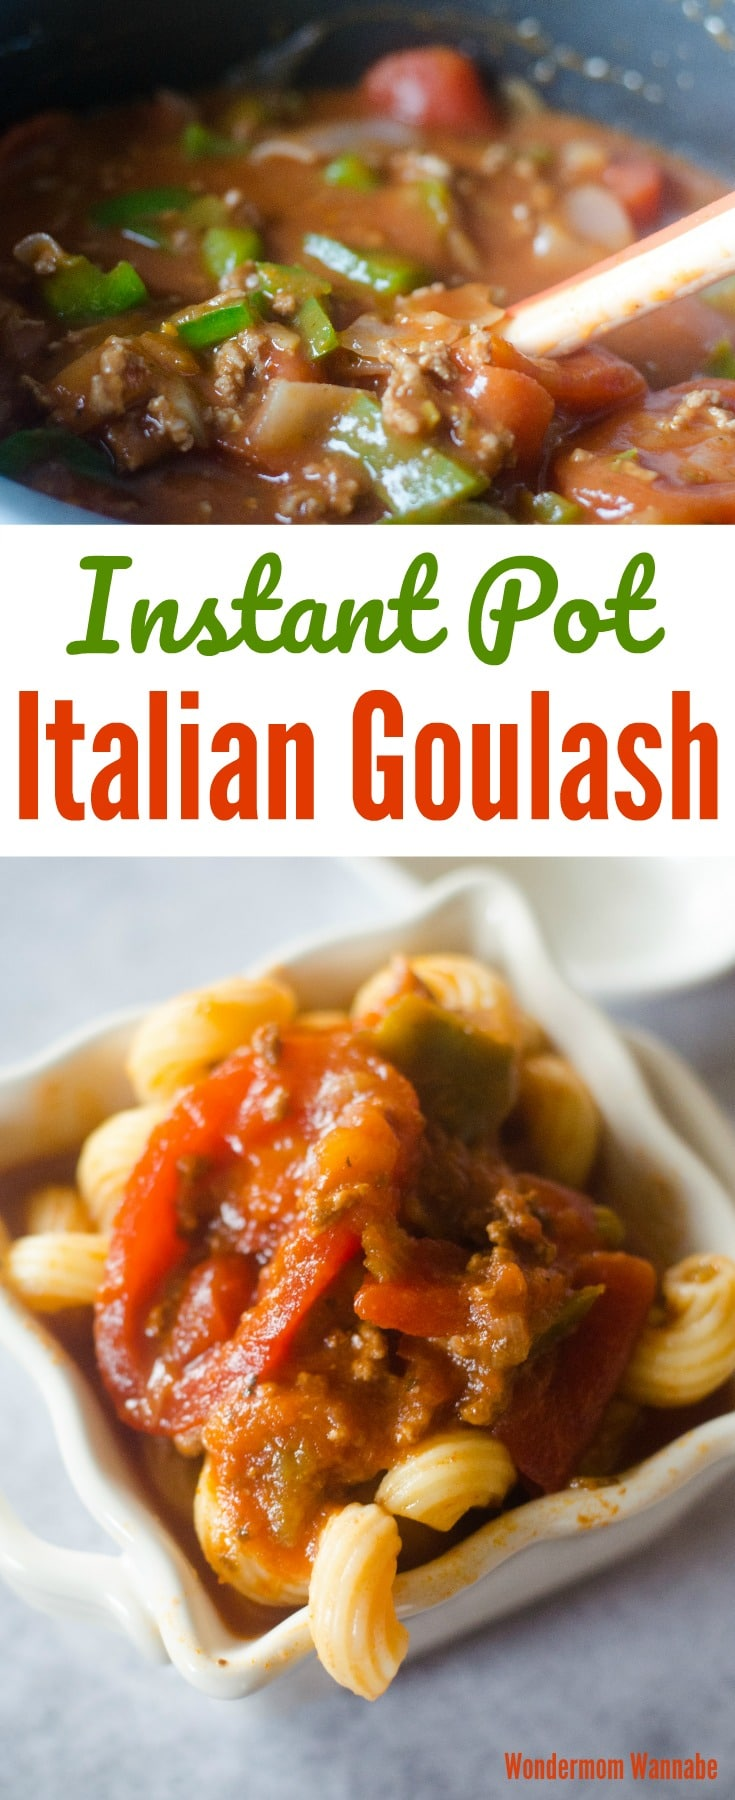 This Instant Pot Italian Goulash is so easy and everyone in the family loves it! #instantpotrecipes #dinner #goulash #pressurecooker